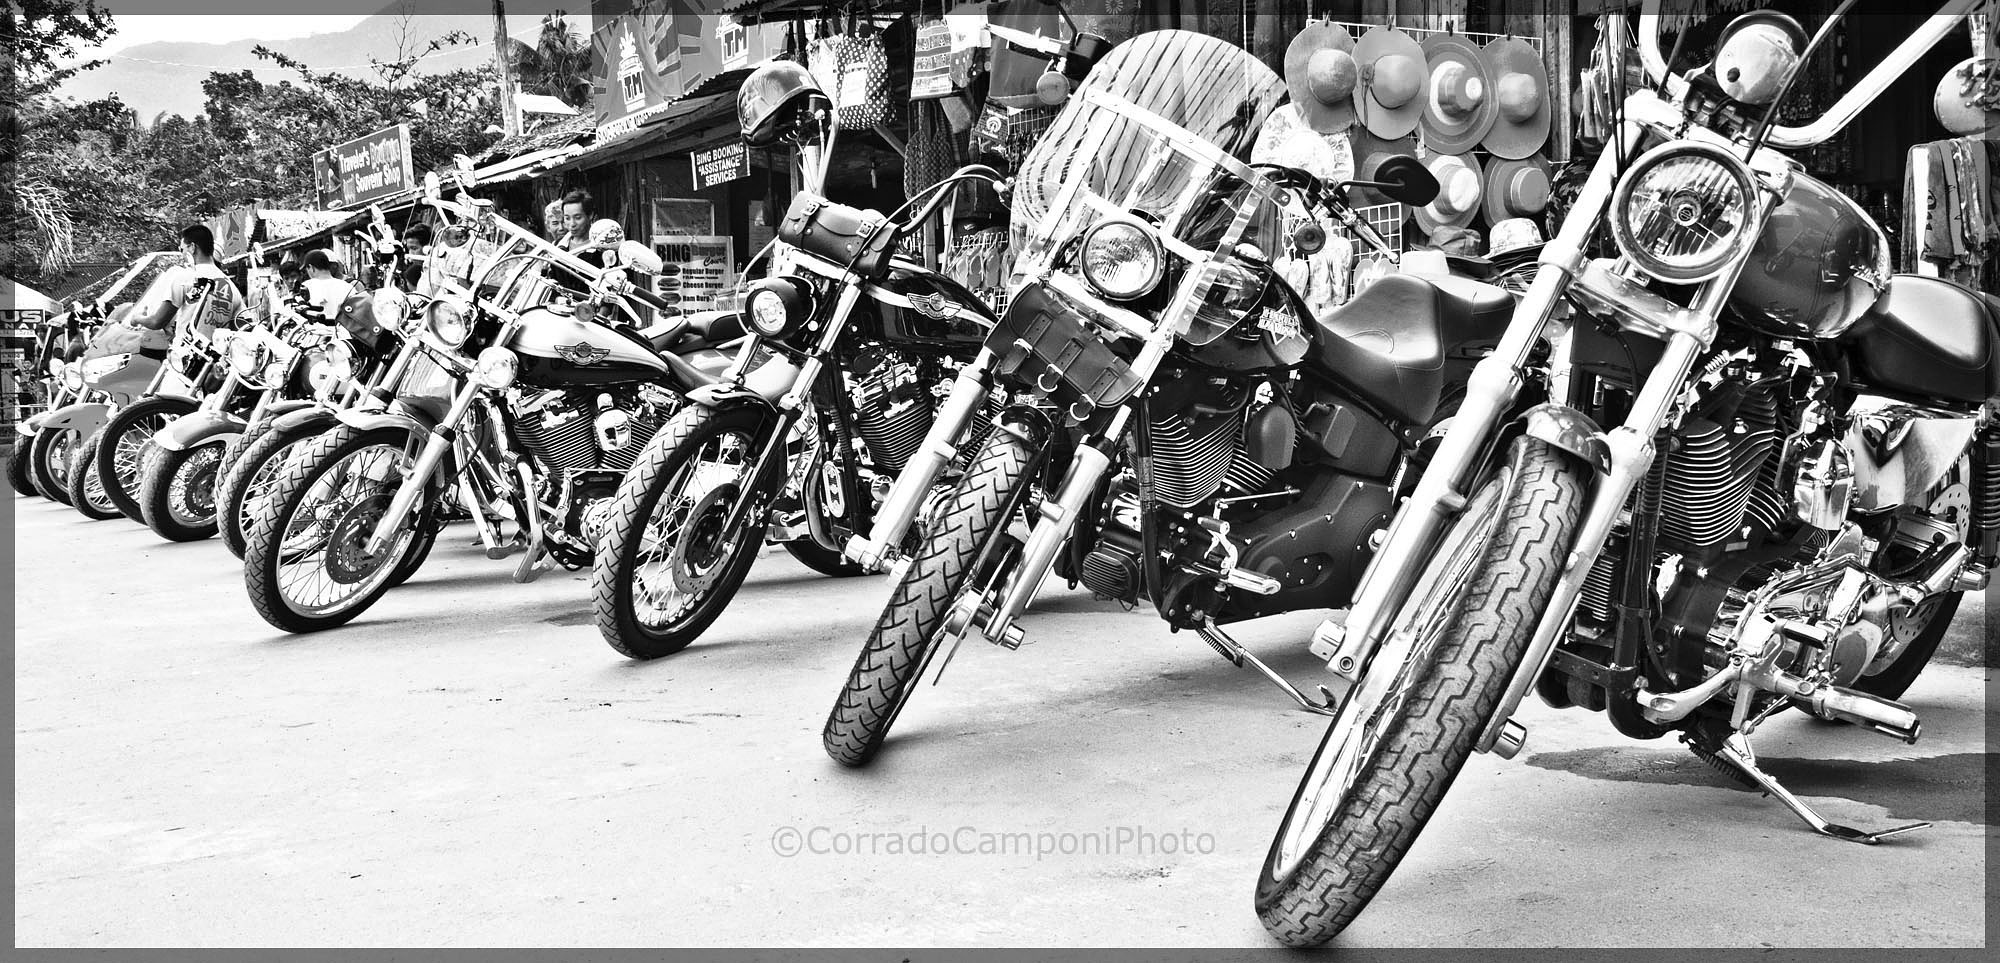 on two wheel by corradocamponiphoto